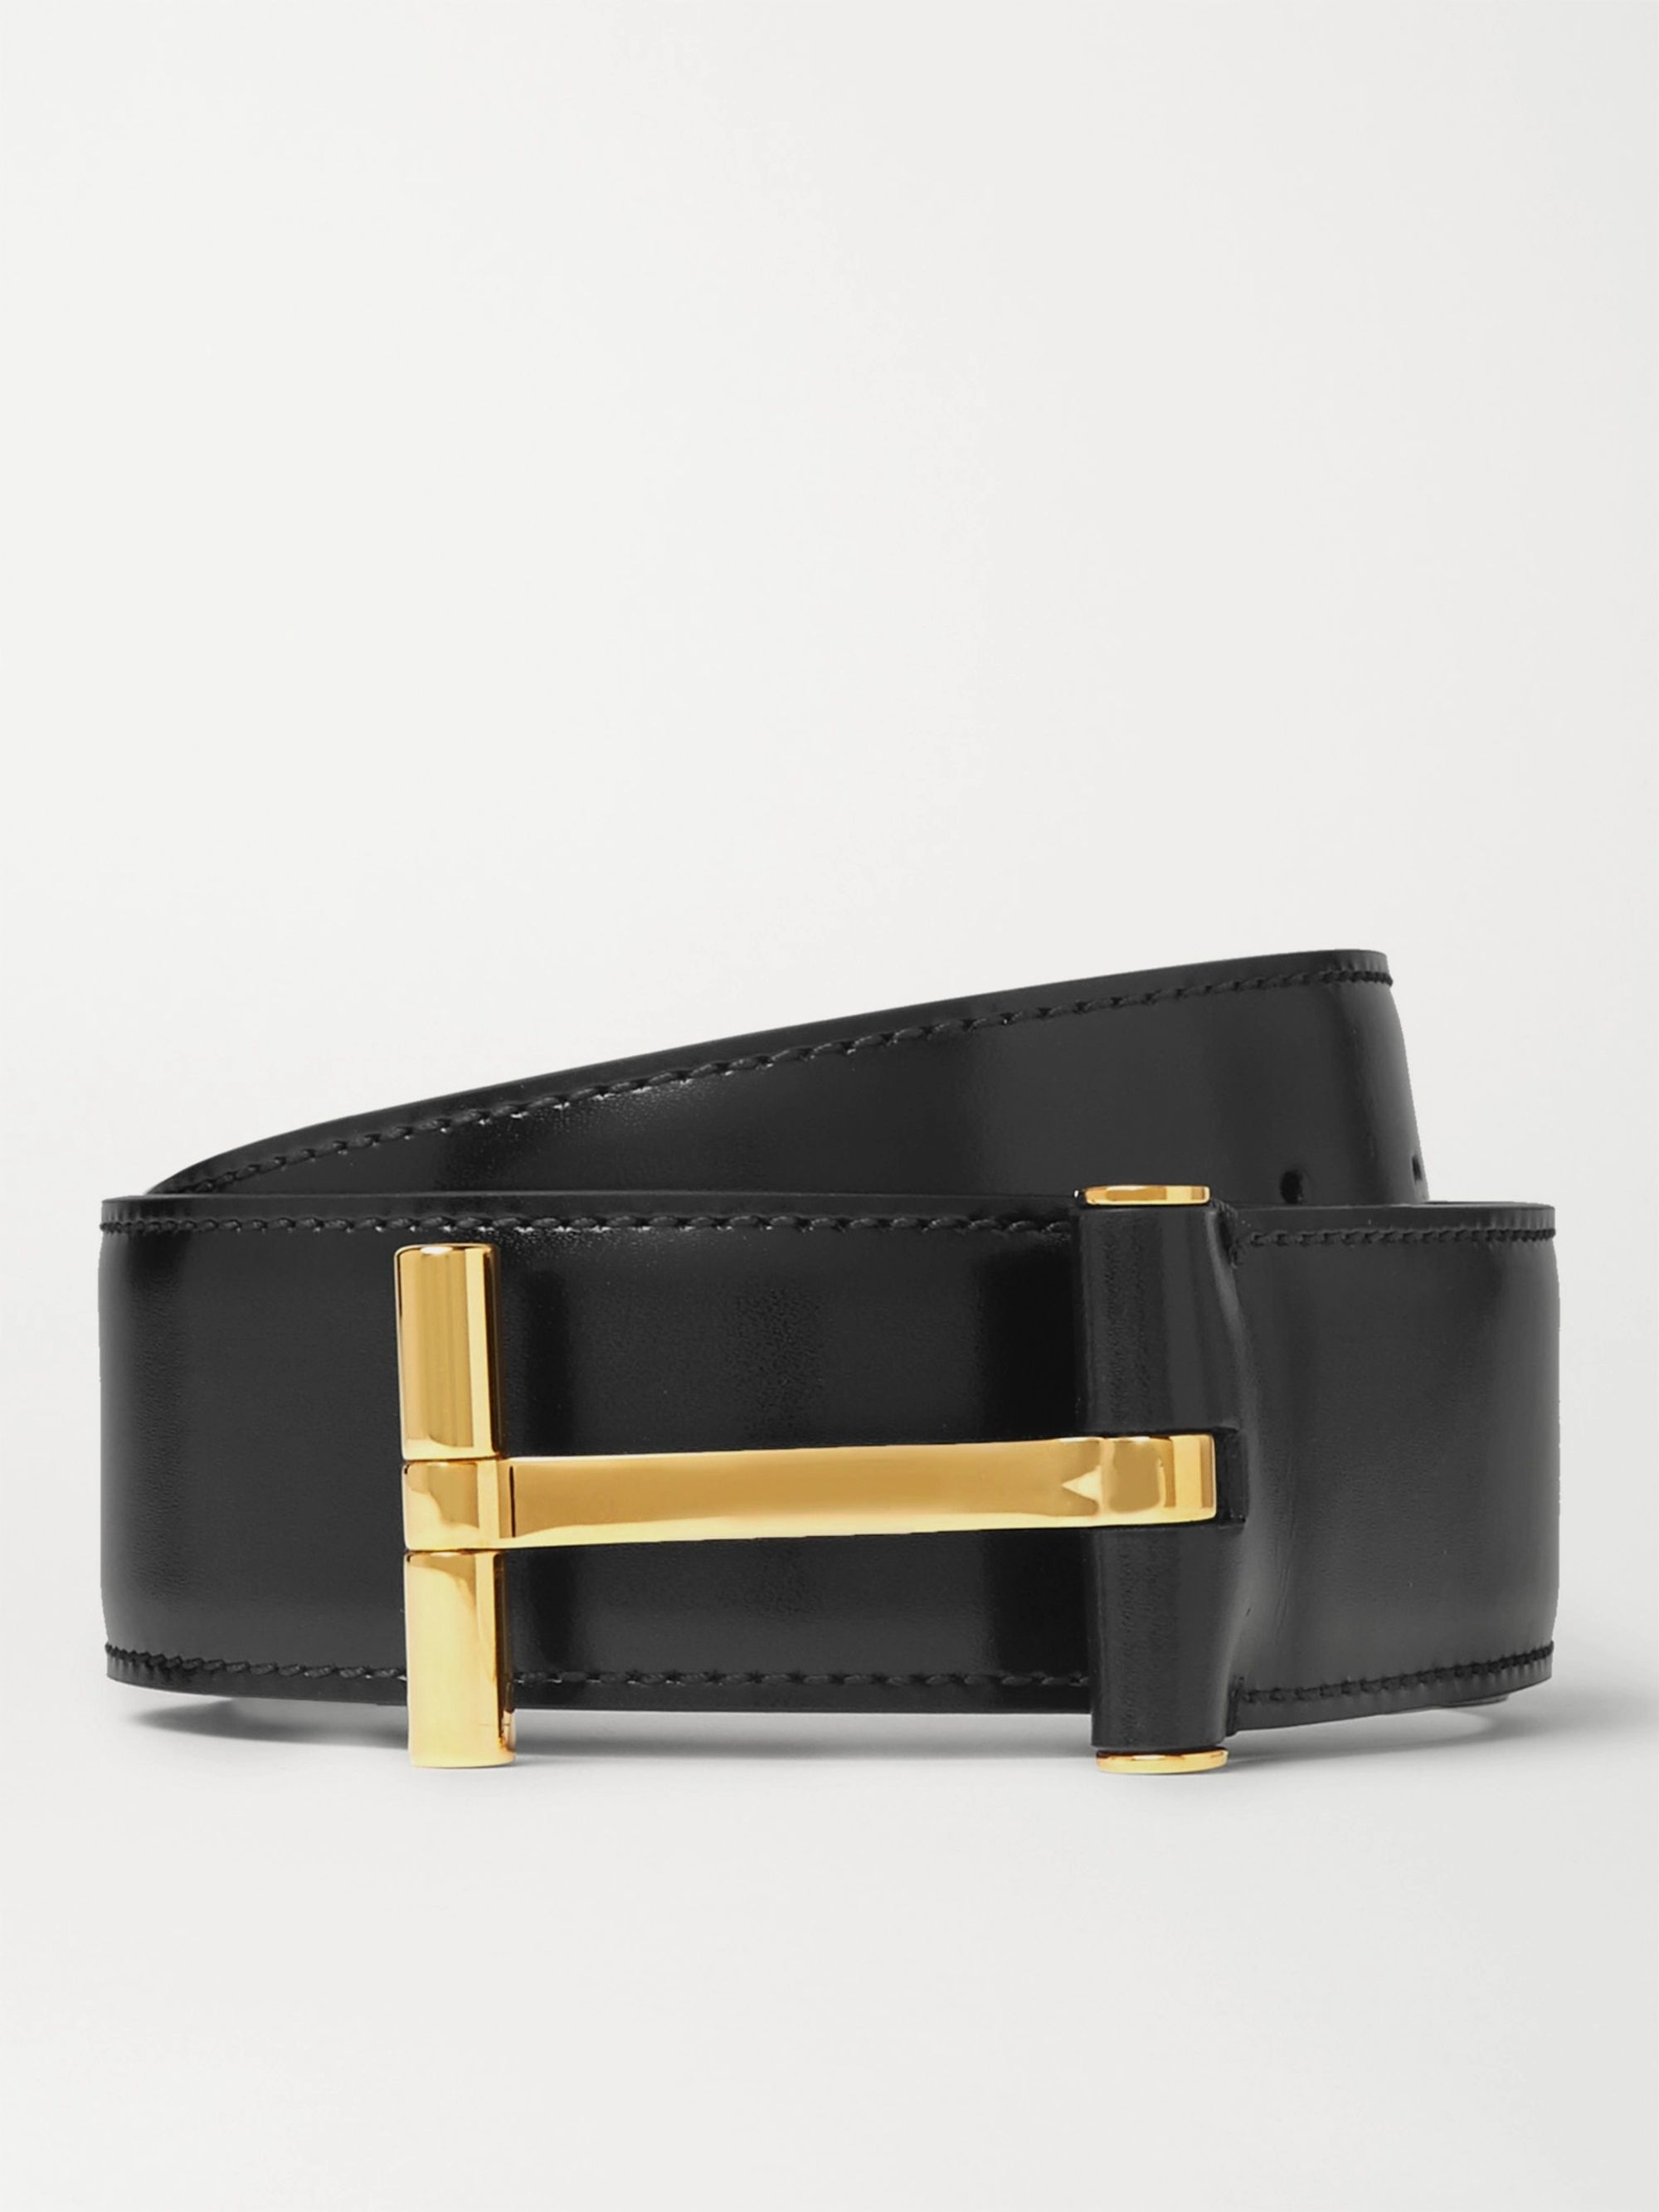 TOM FORD 4cm Black Leather Belt